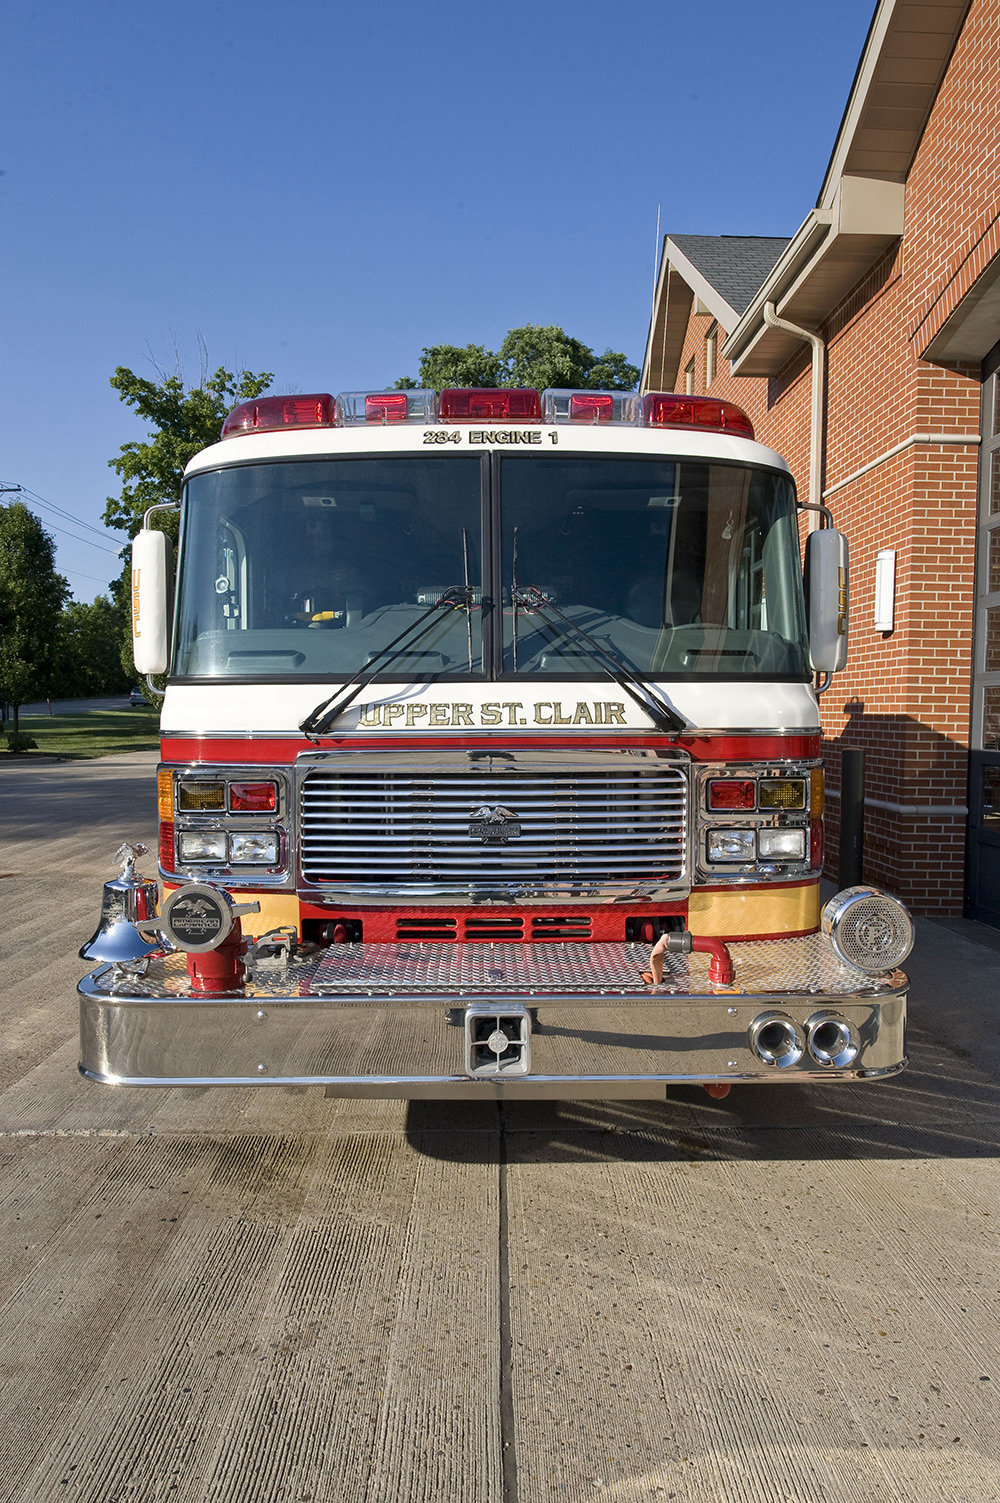 USCVFD 284 Engine 1 Front View